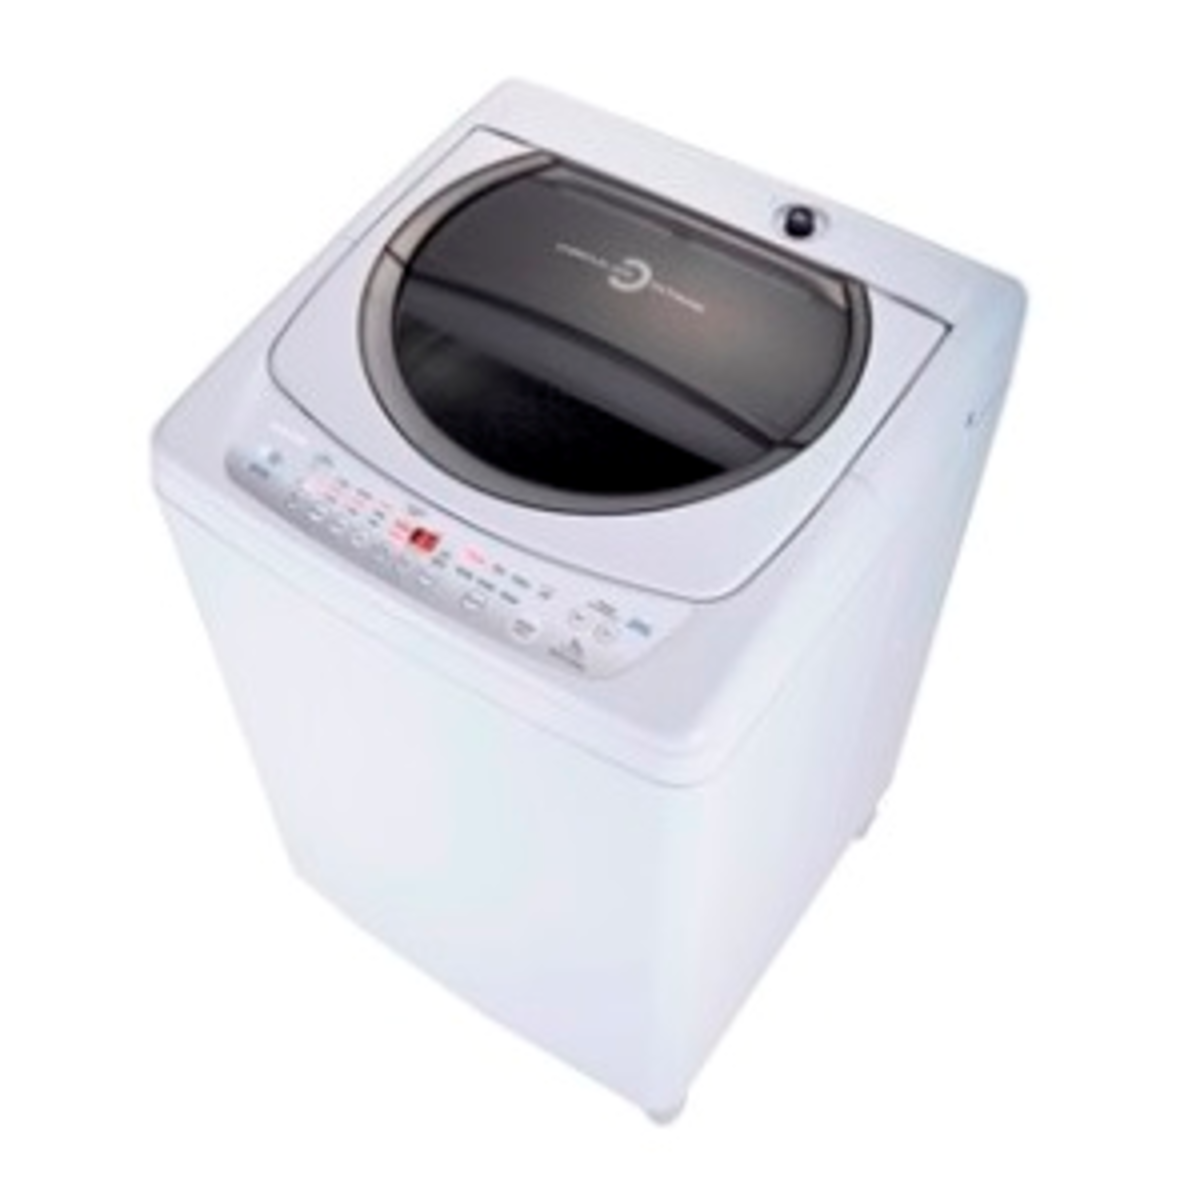 AW-B1000GPH  Automatic Washer (9.0kg With Pump)  Hong Kong Warranty Genuine Products